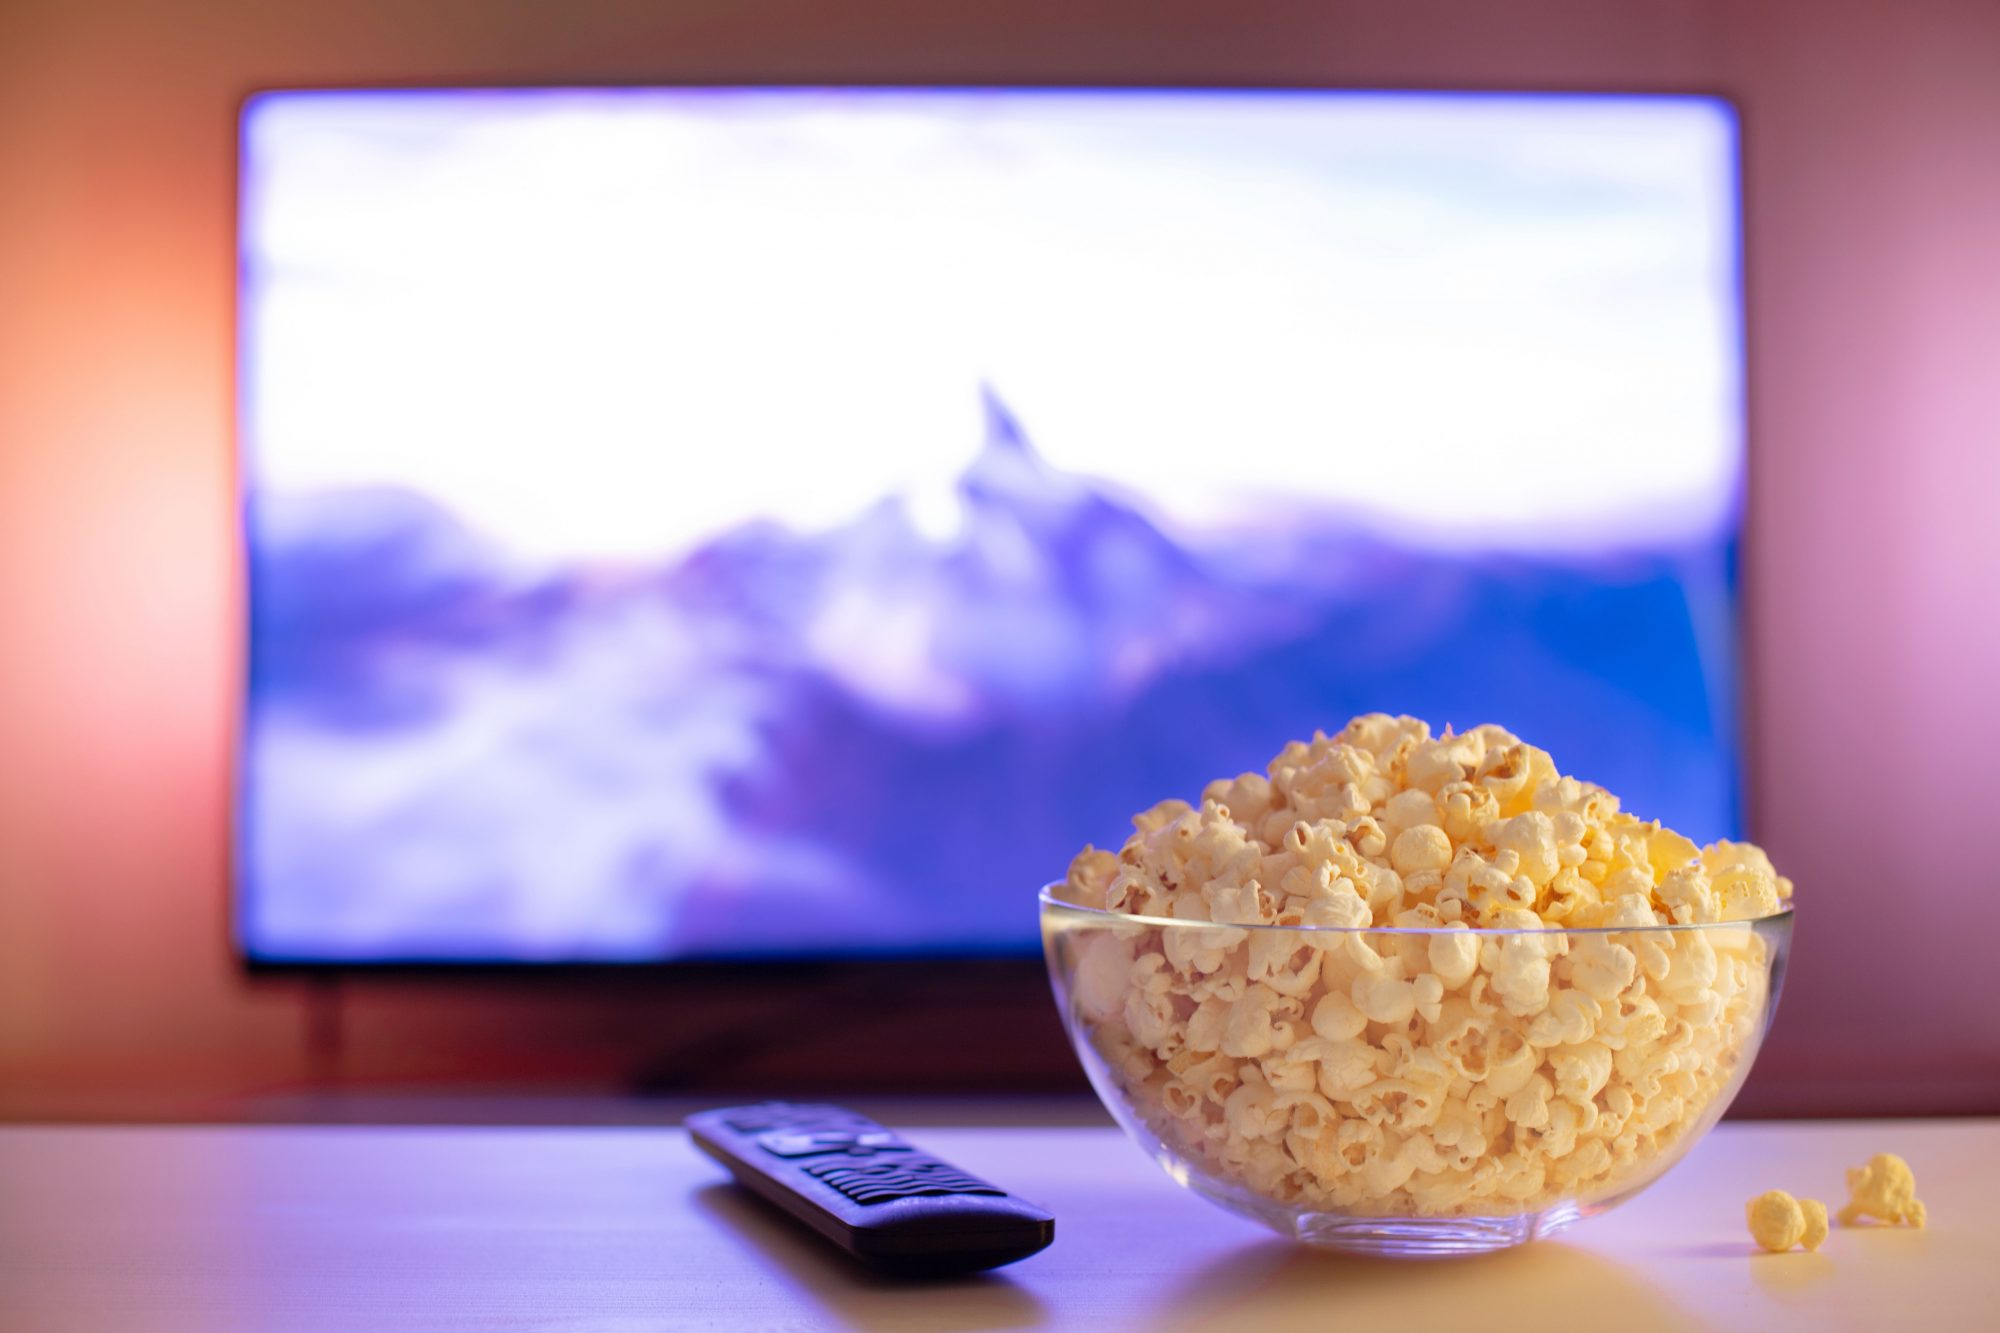 glass bowl of popcorn and remote control